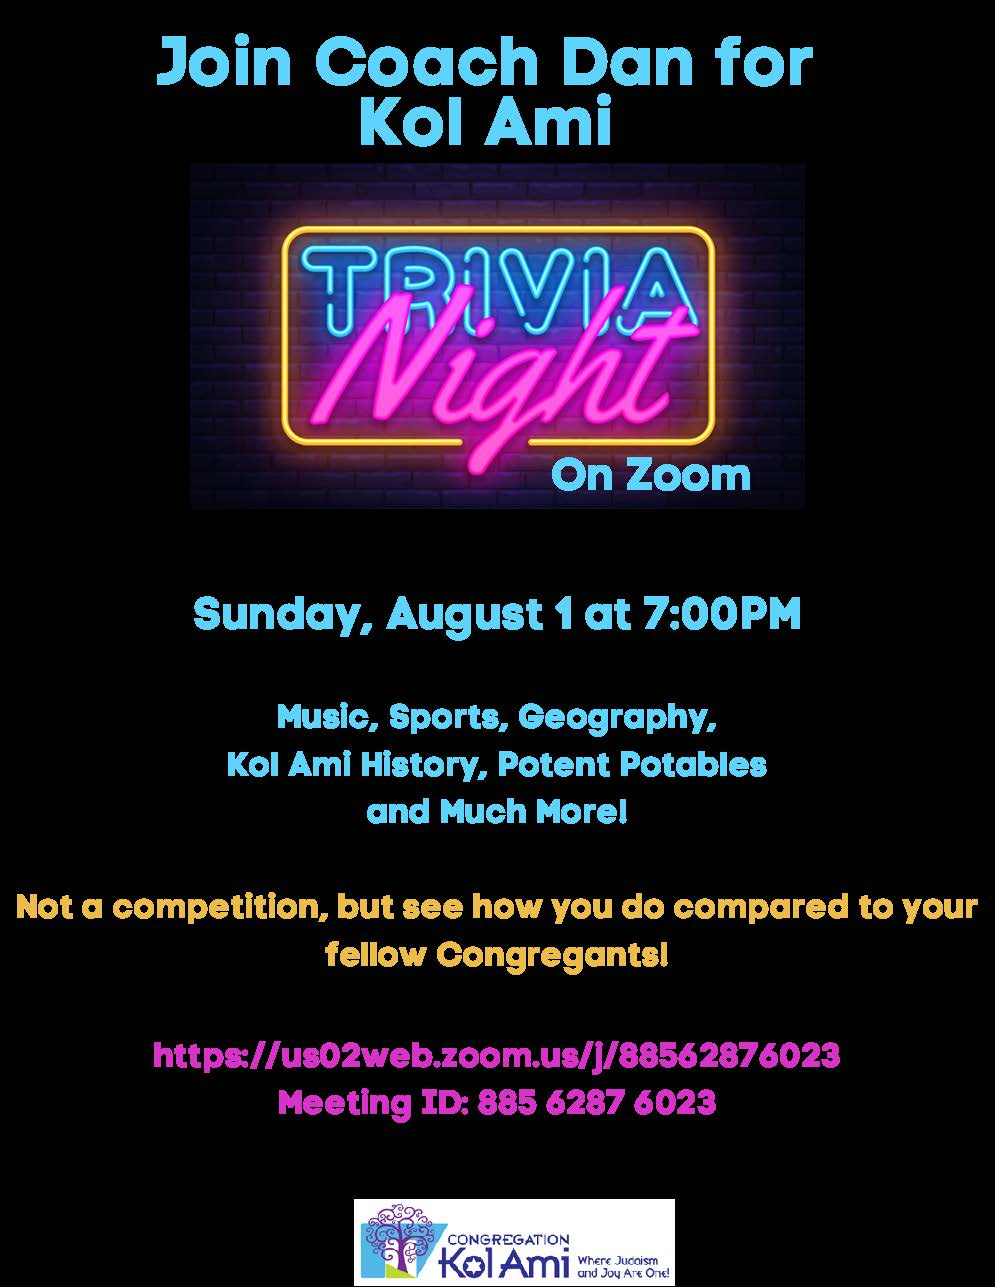 Banner Image for TRIVIA NIGHT ON ZOOM